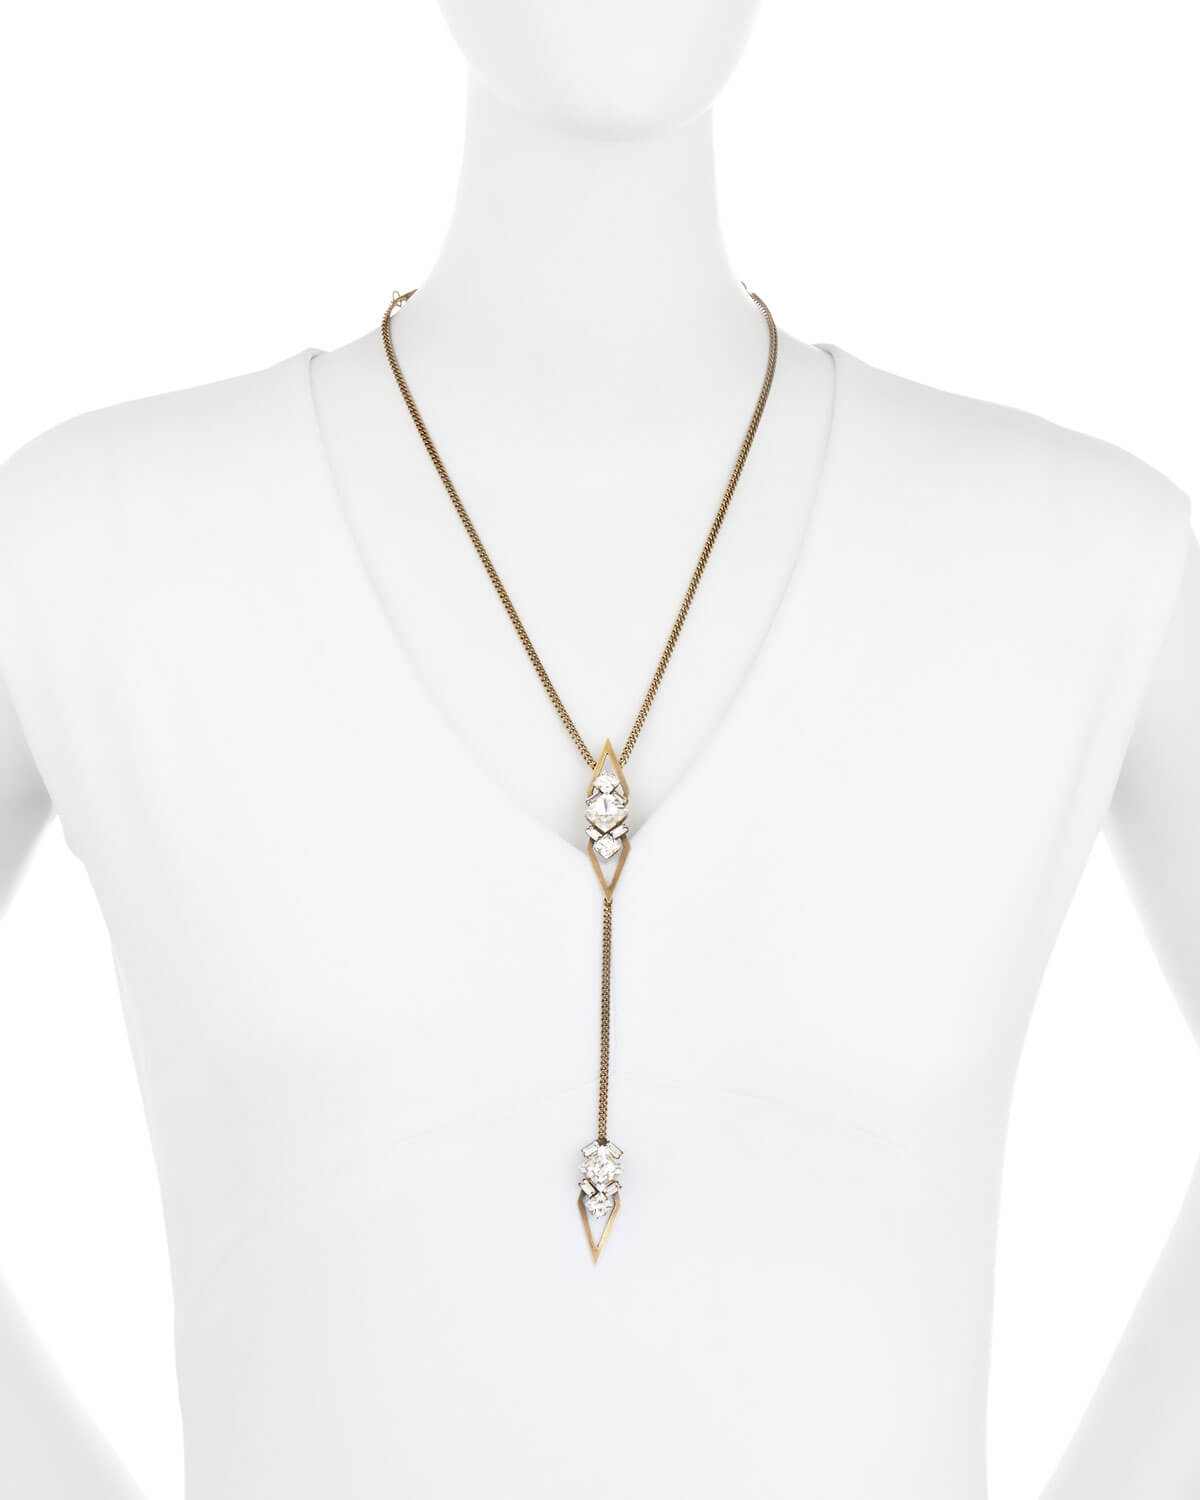 necklace chain - crystal stone